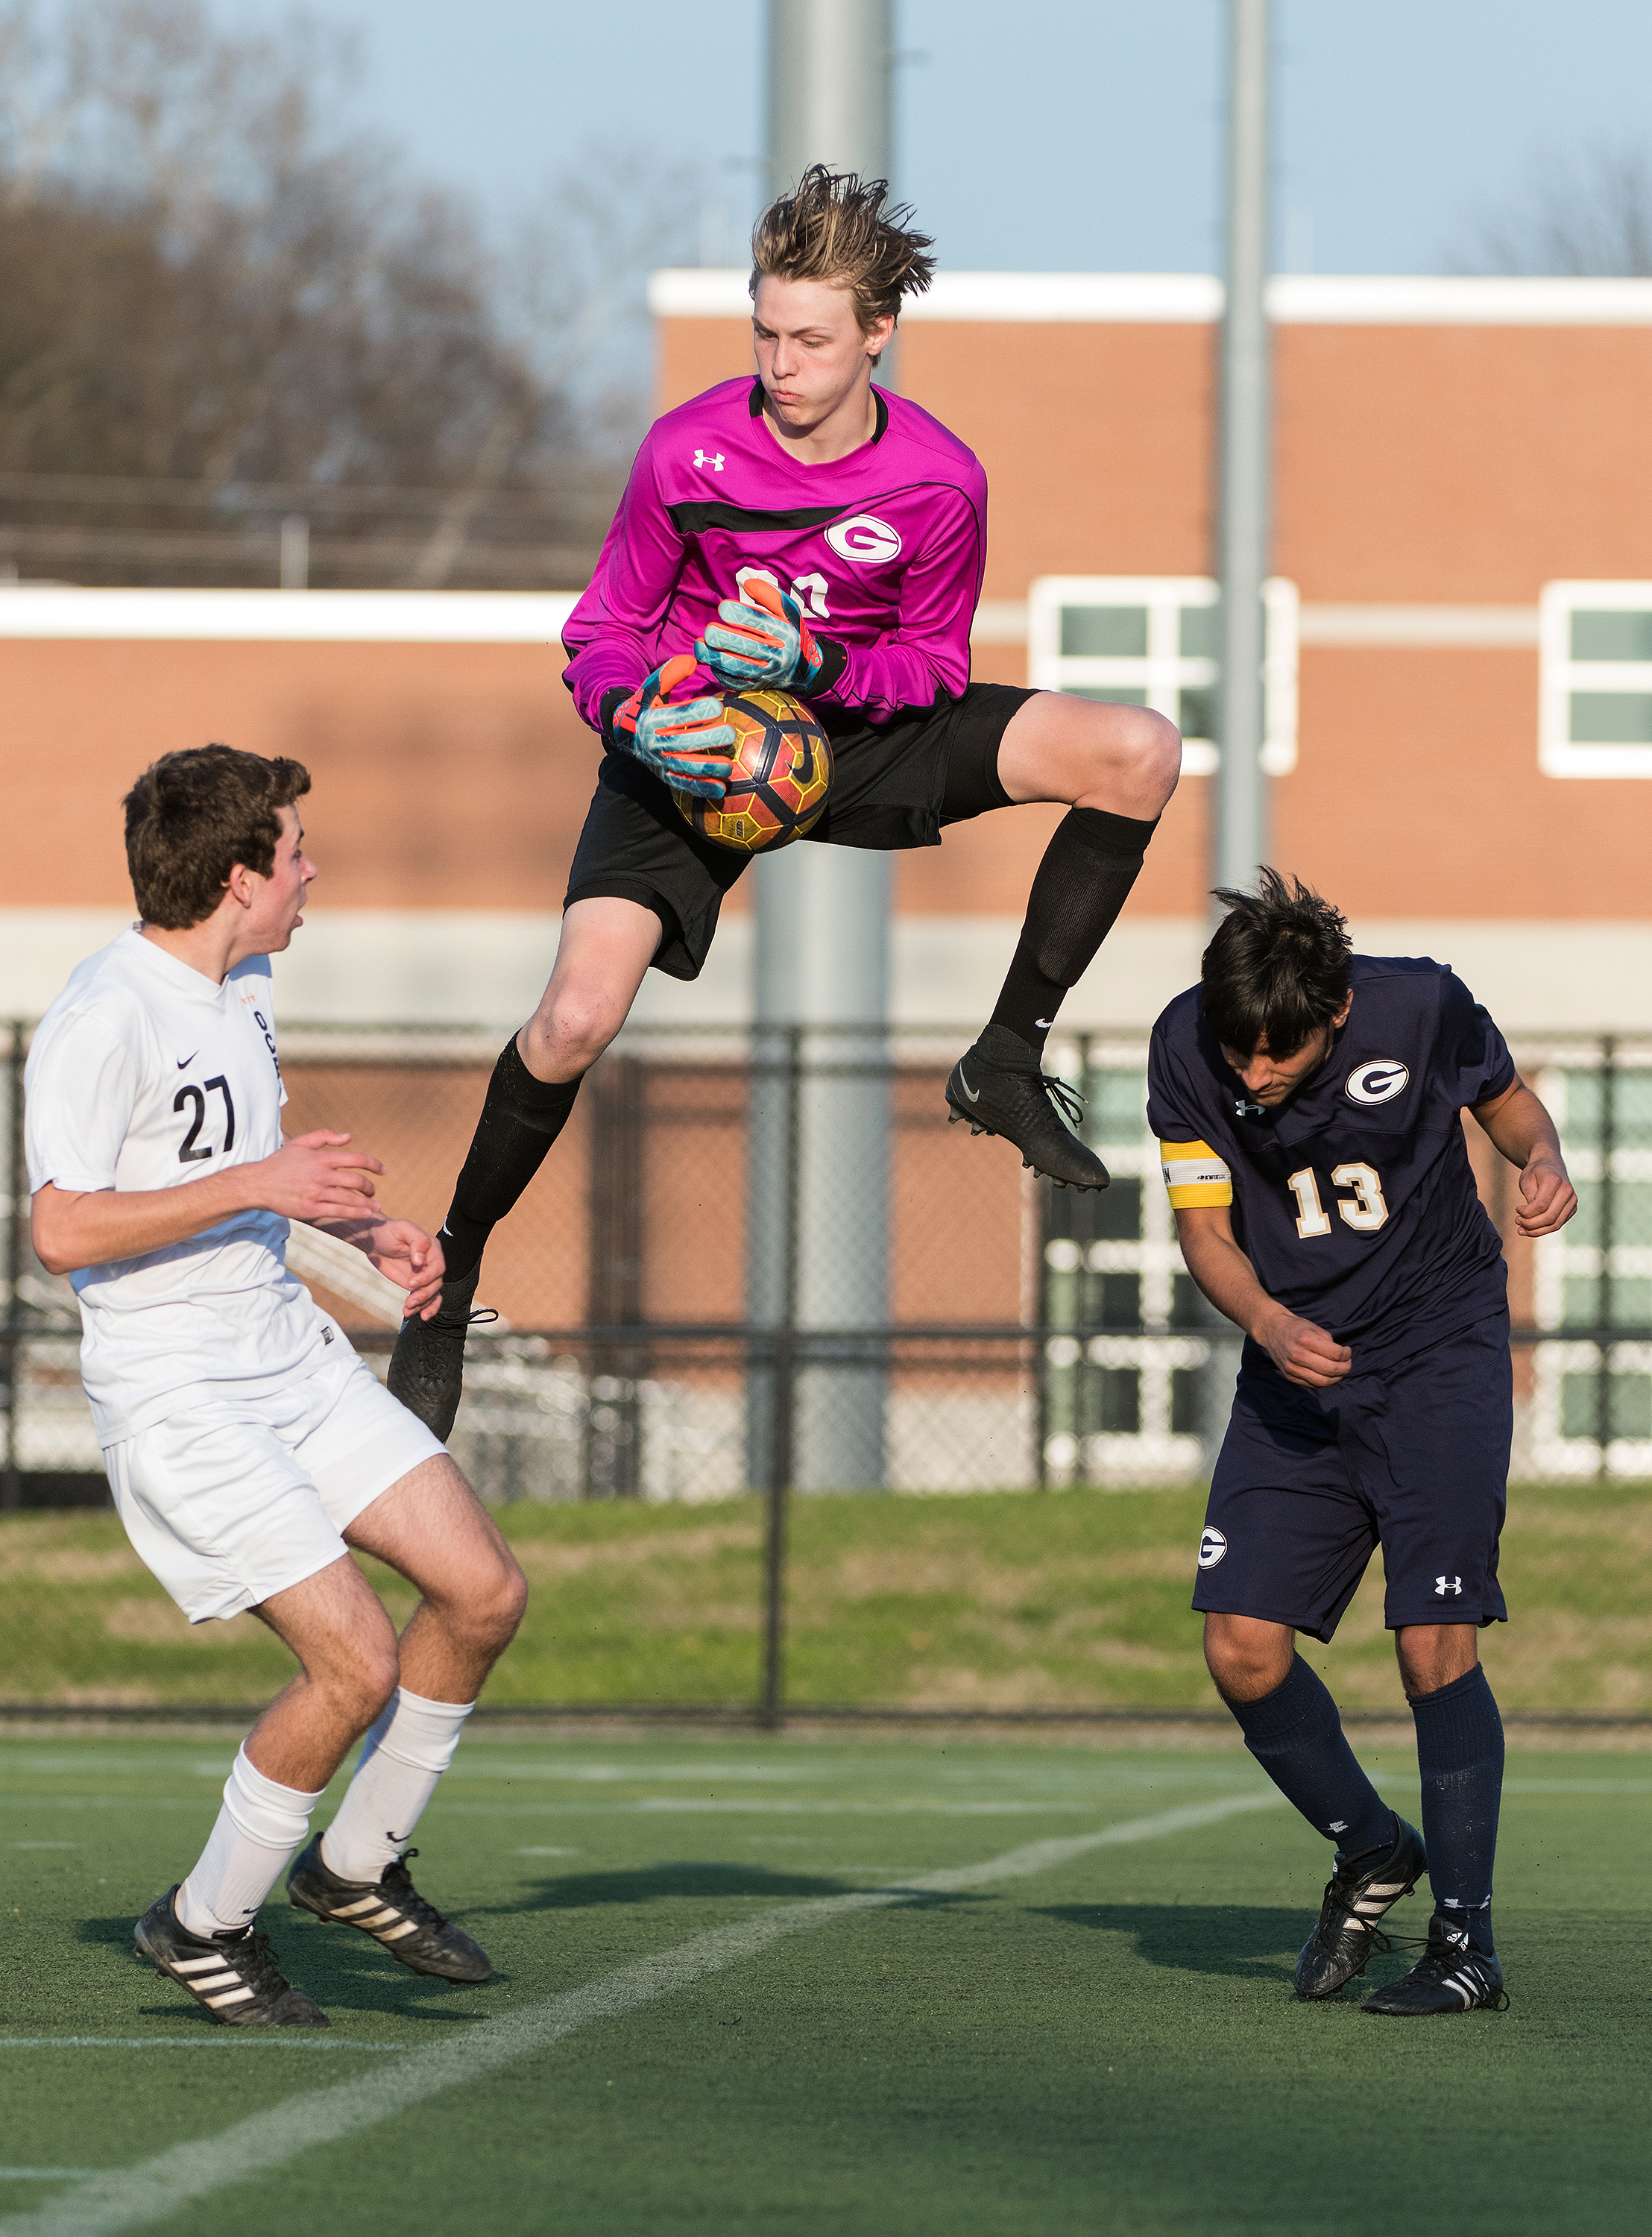 Granby goalkeeper makes a save against Ocean Lakes midfielder Rhys Jones (27) during Friday night's game at Powhatan Field in Norfolk, VA. Ocean Lakes defeated Granby 3-0.